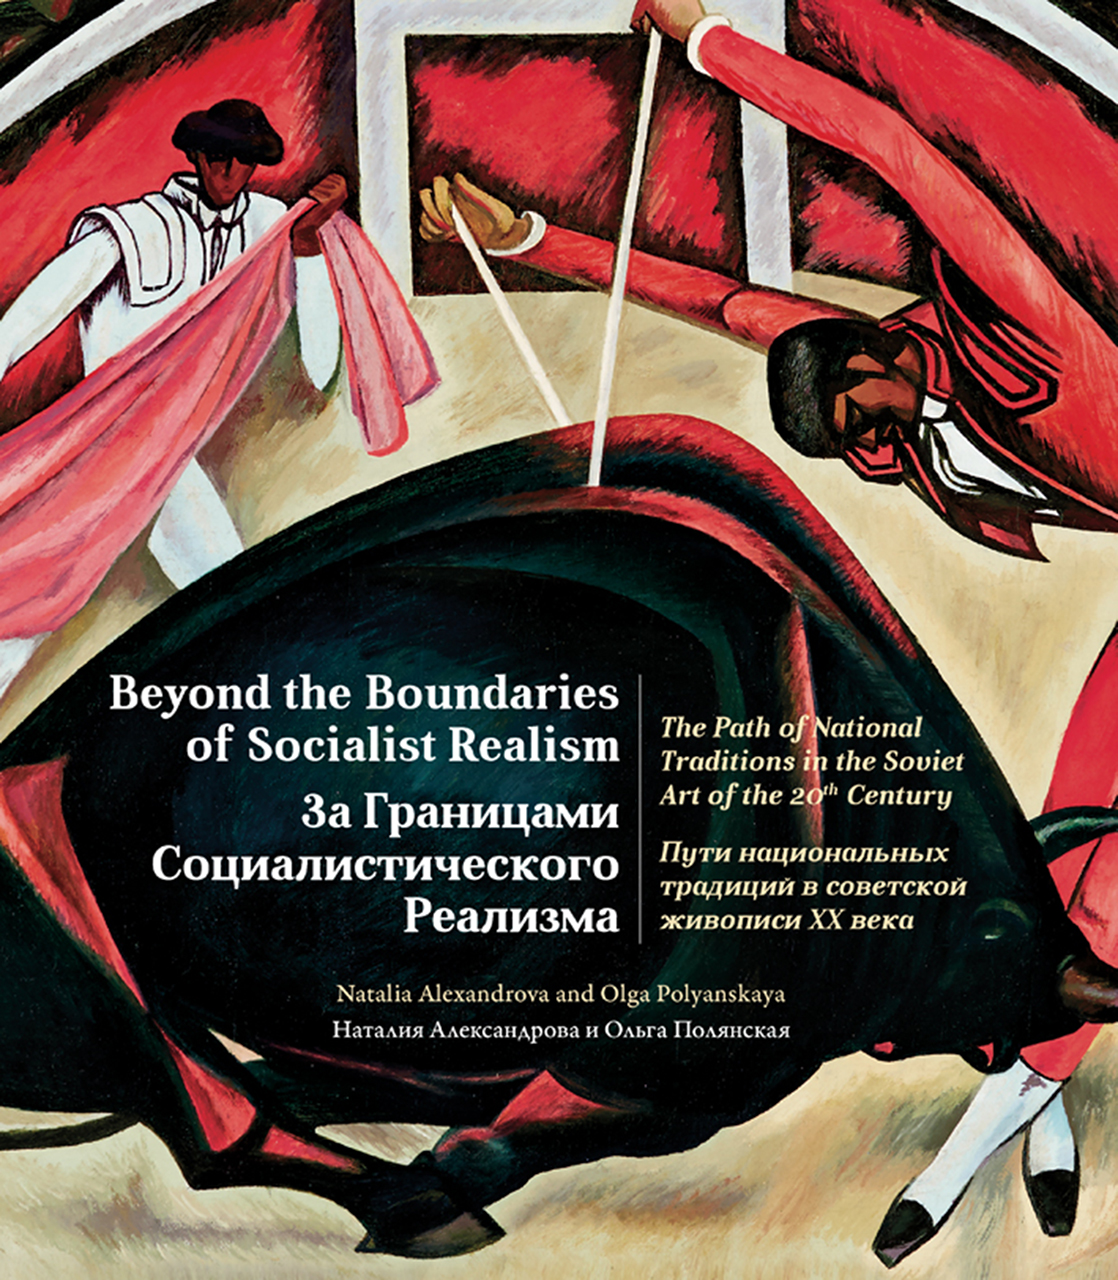 Beyond the Boundaries of Socialist Realism: The Path of National Traditions in the Soviet Art of the Twentieth Century